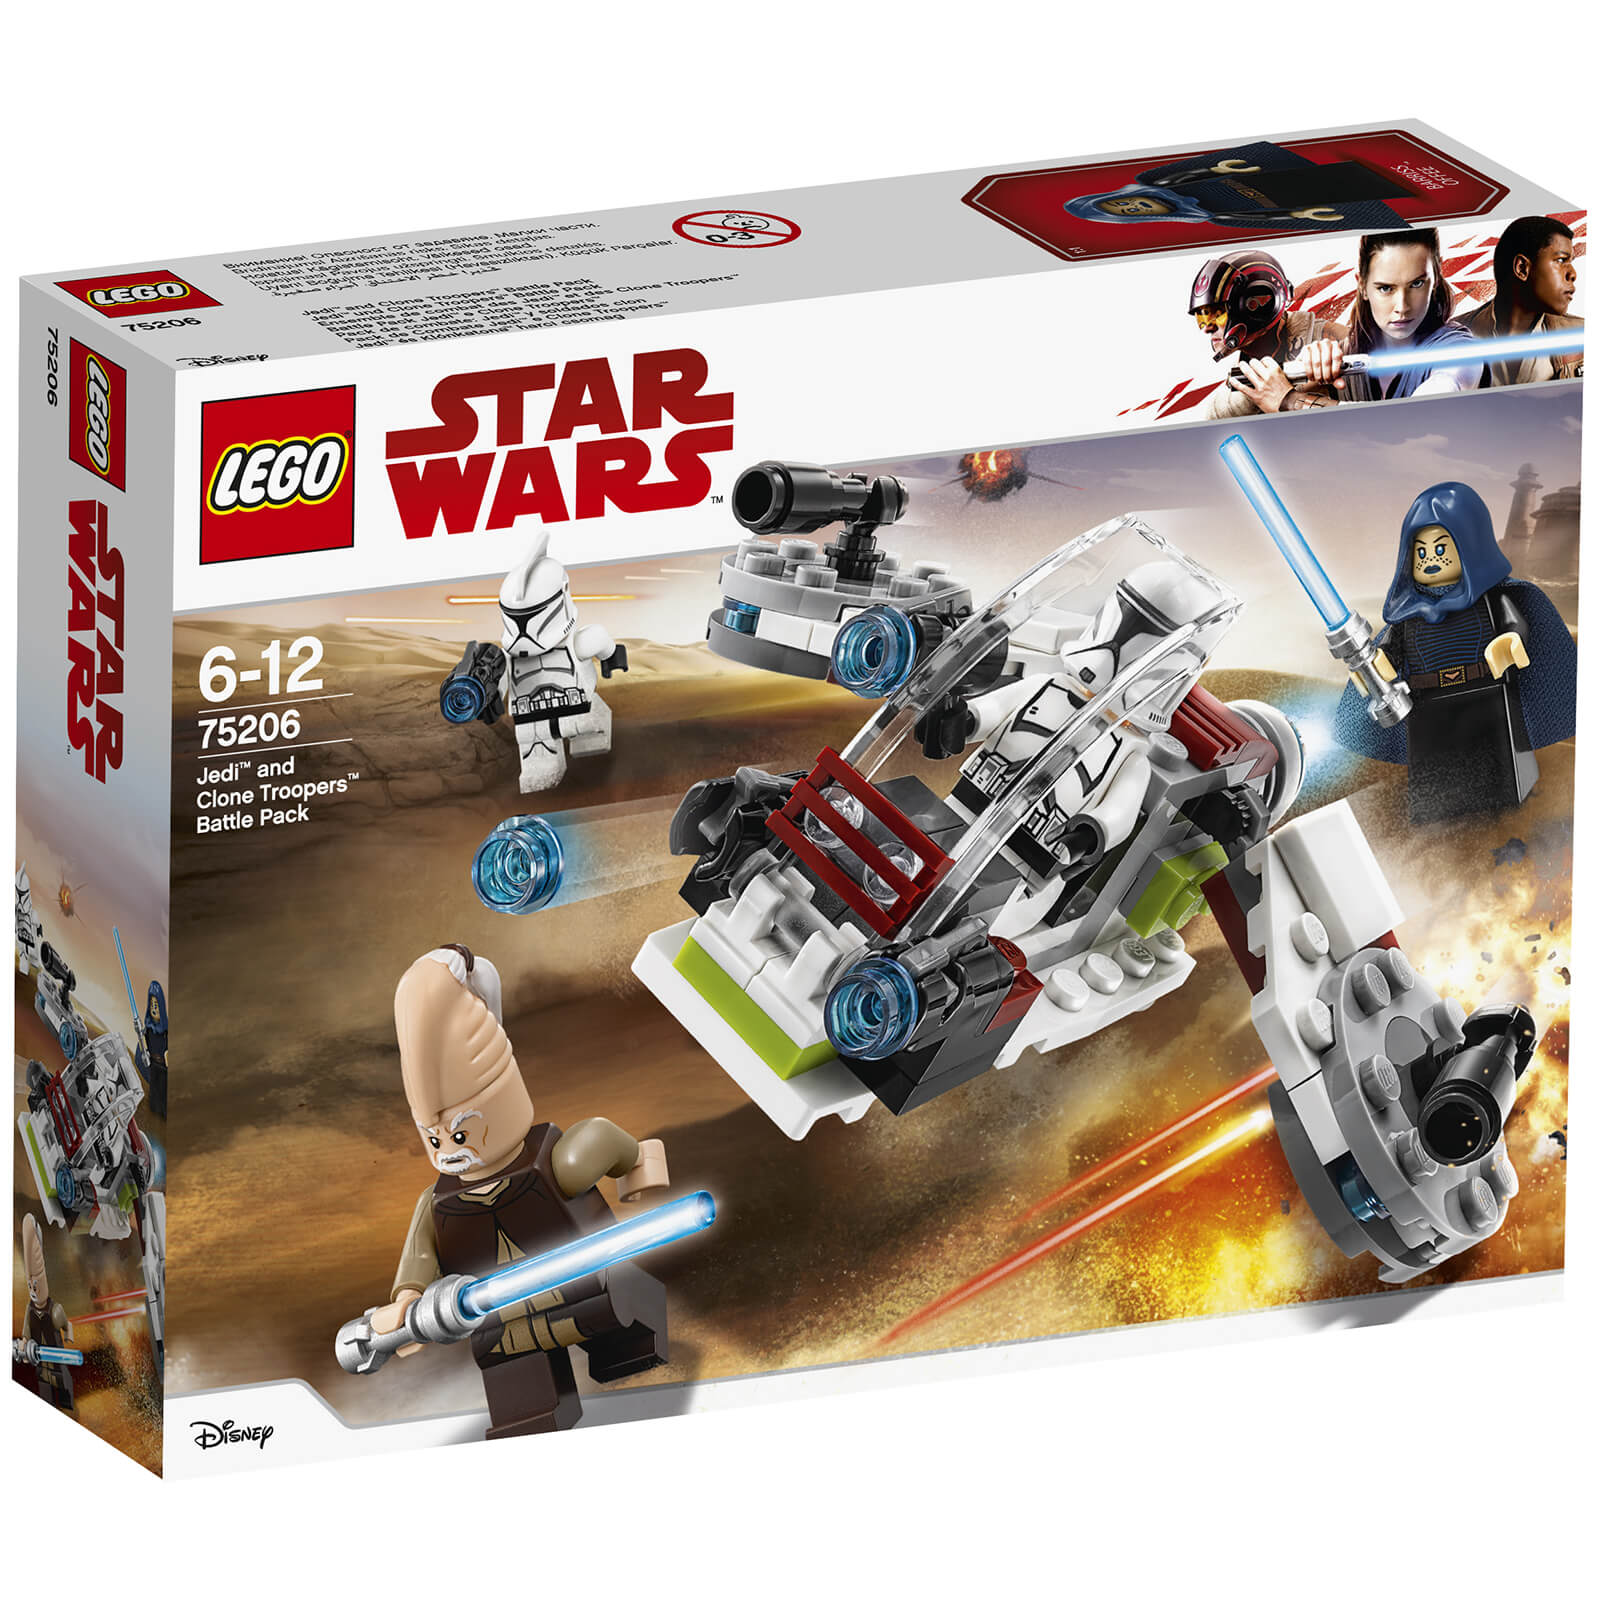 LEGO Star Wars Classic: Jedi and Clone Troopers Battle Pack (75206)